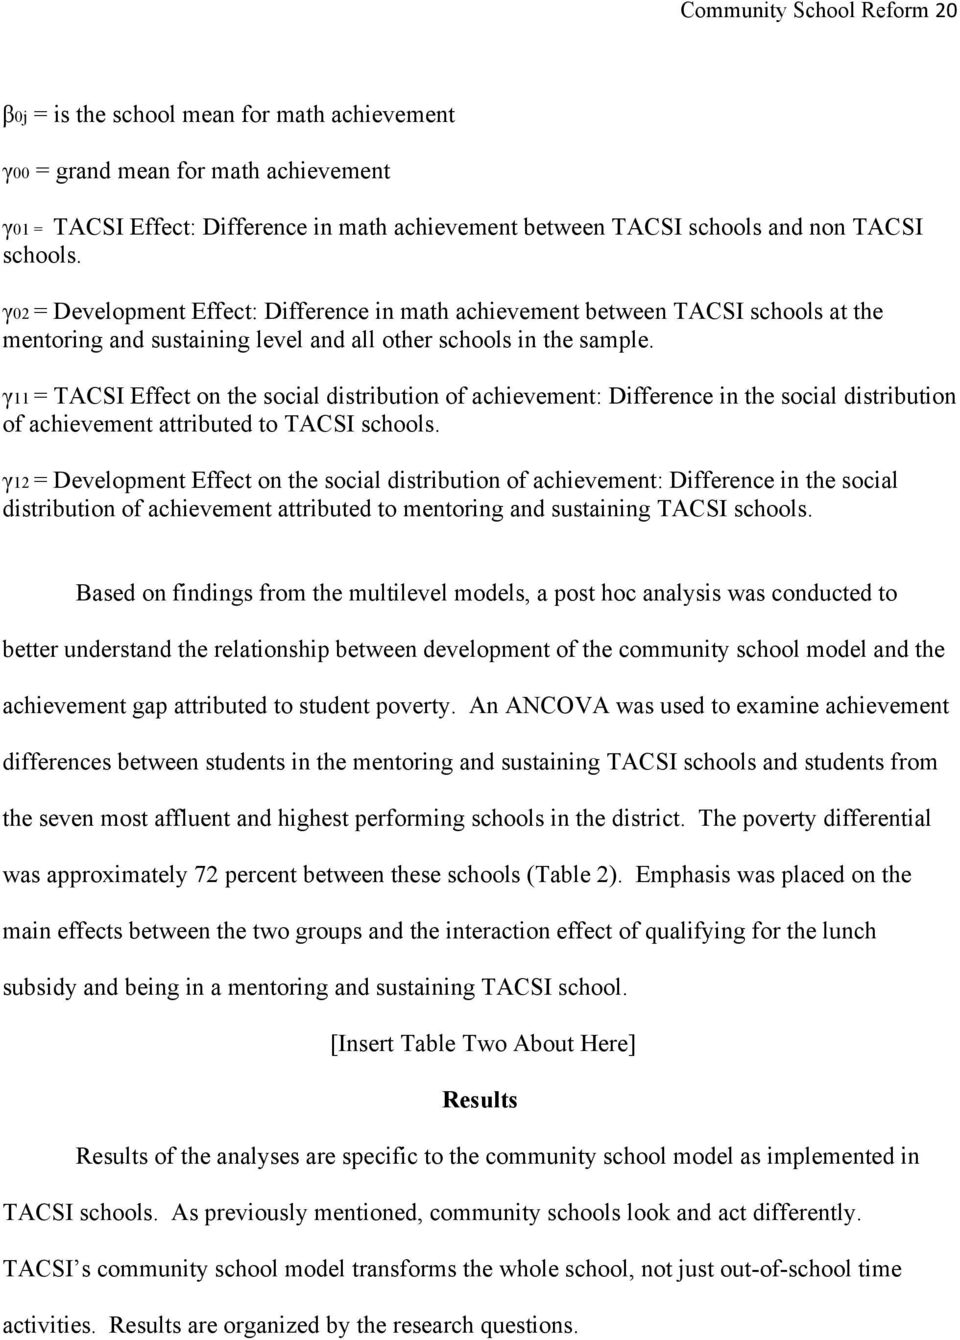 γ11 = TACSI Effect on the social distribution of achievement: Difference in the social distribution of achievement attributed to TACSI schools.